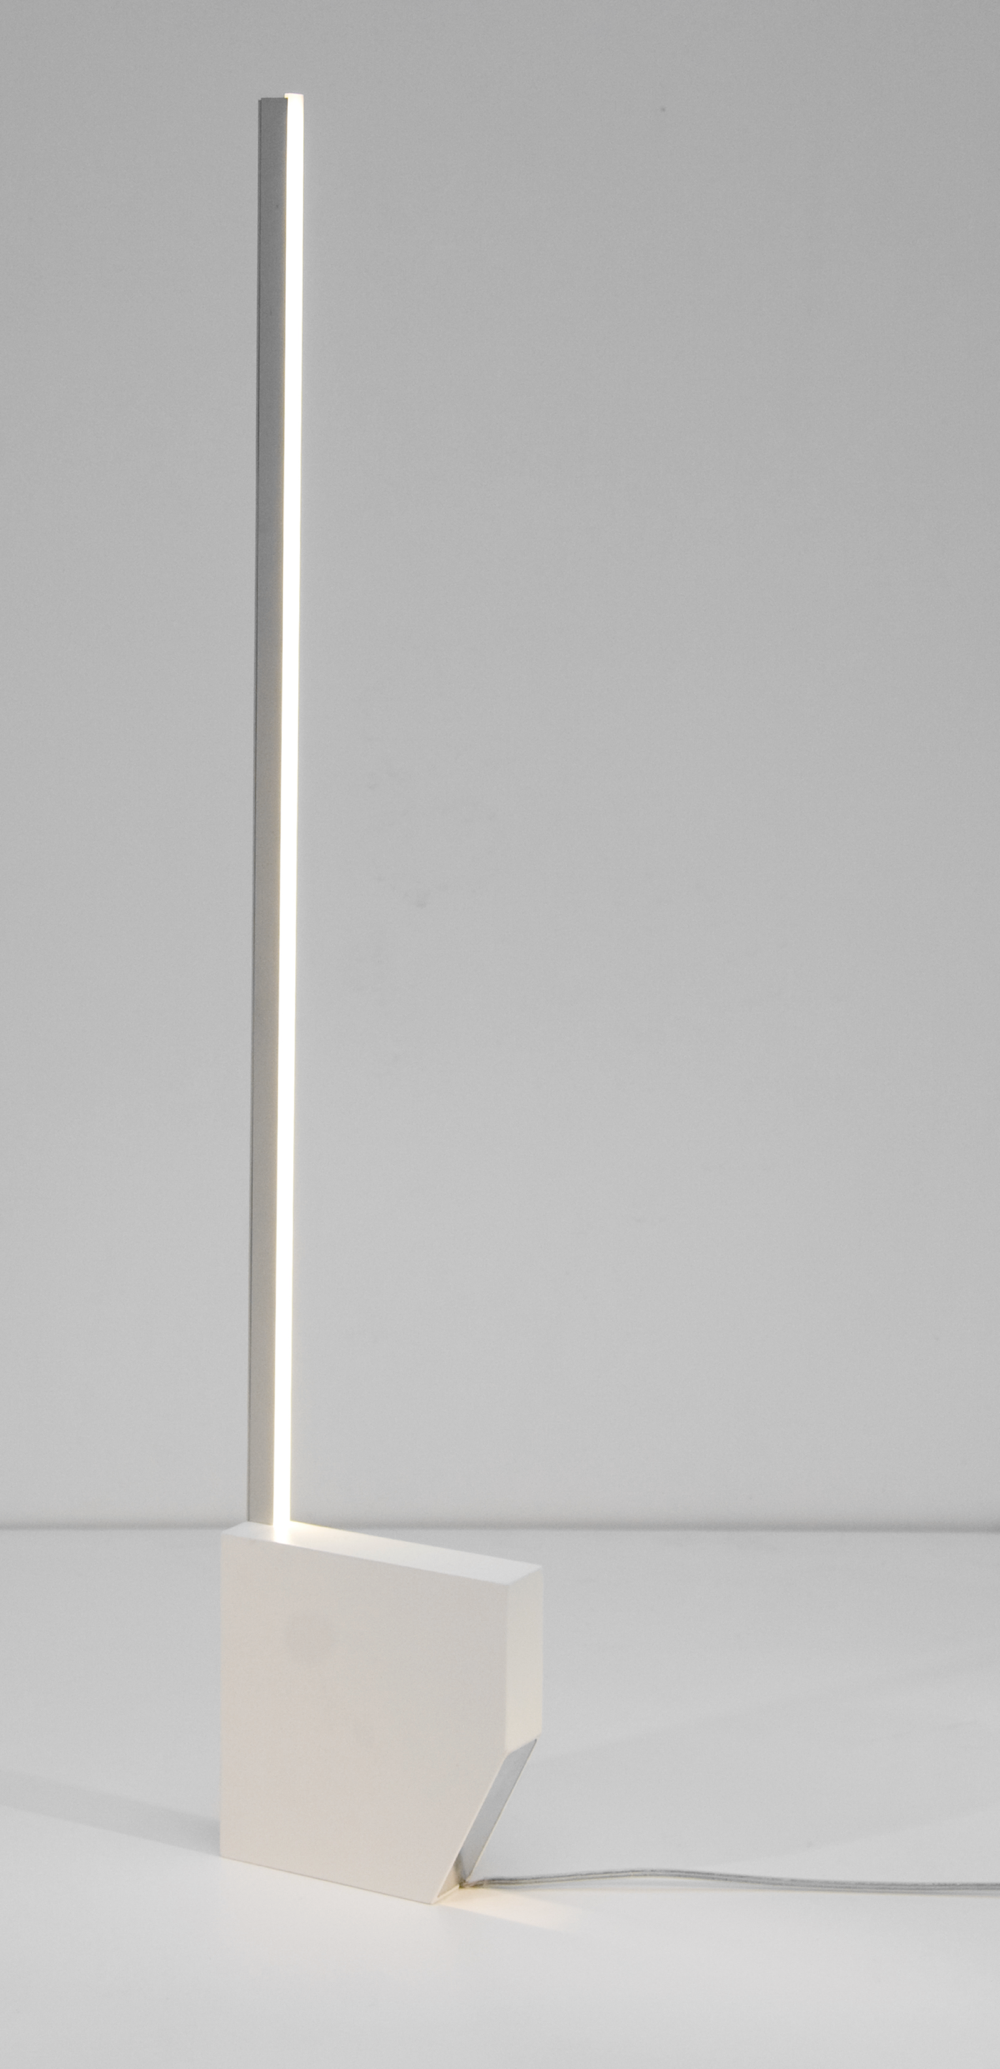 The Tumble Lamp or Tuimelled is another remarkable table and floor lamp design by renowned Dutch industrial designer Aldo van den Nieuwelaar. Originally designed in 1968 and re-produced by Dutch lighting brand Boops, in his honour, the tumble lamp is comprised of powder coated aluminium, an LED warm white lamp, featuring dimmer control, and is available in black and white.